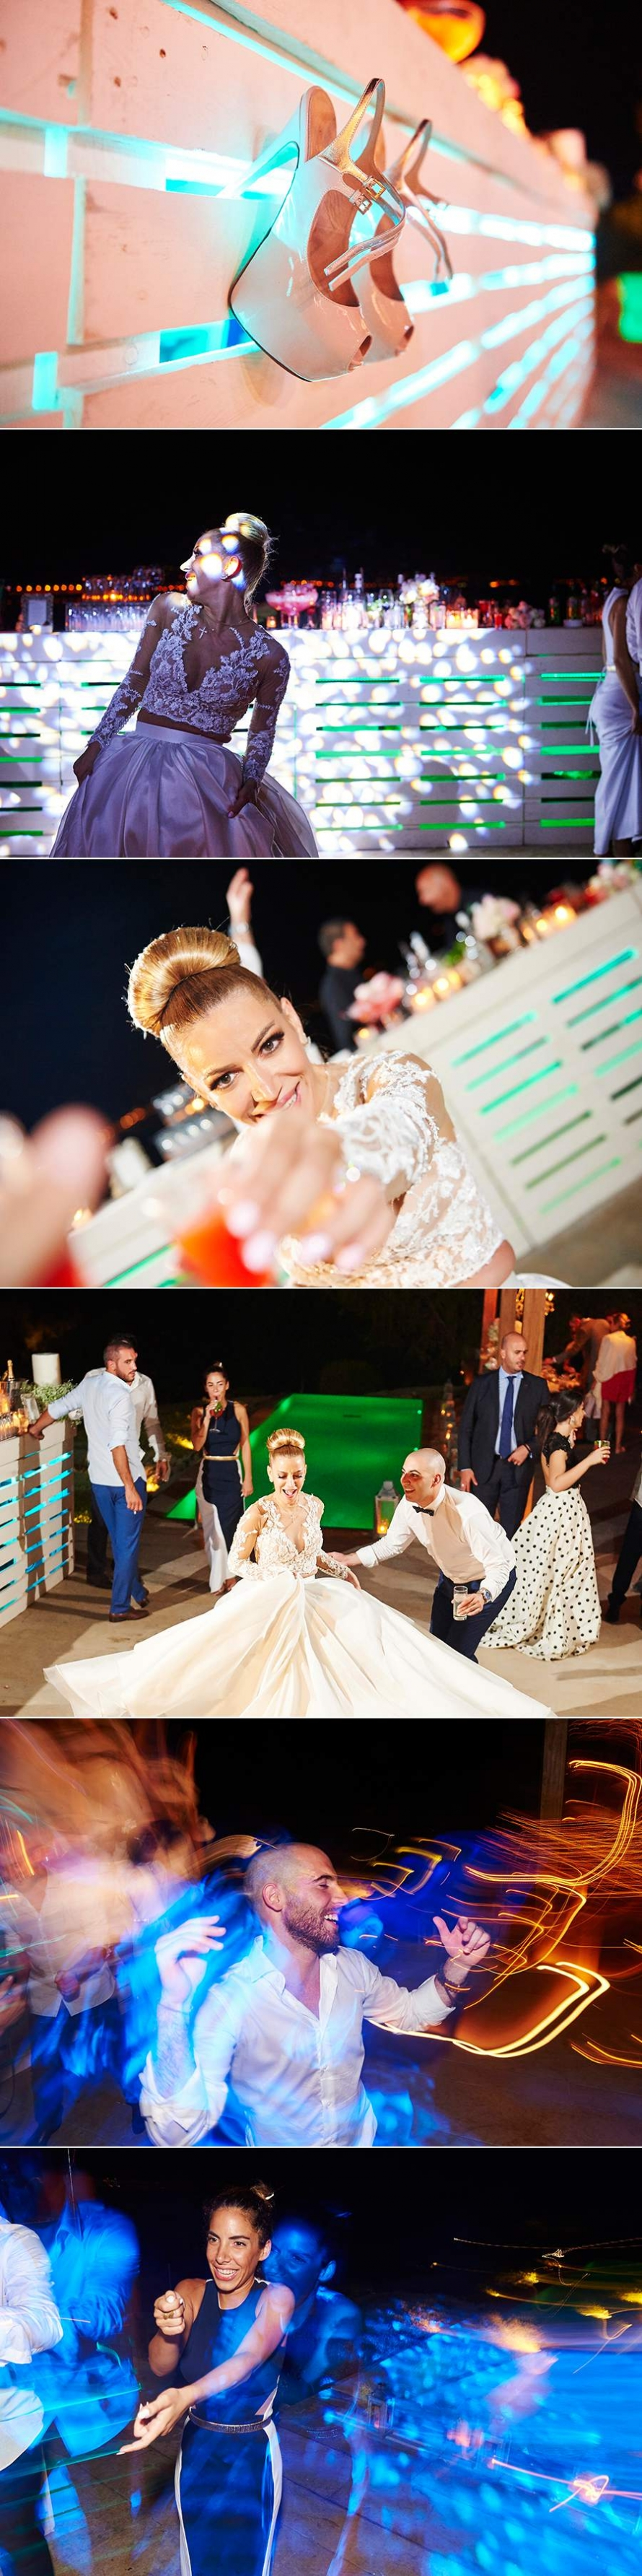 Fady Rana wedding photo 23